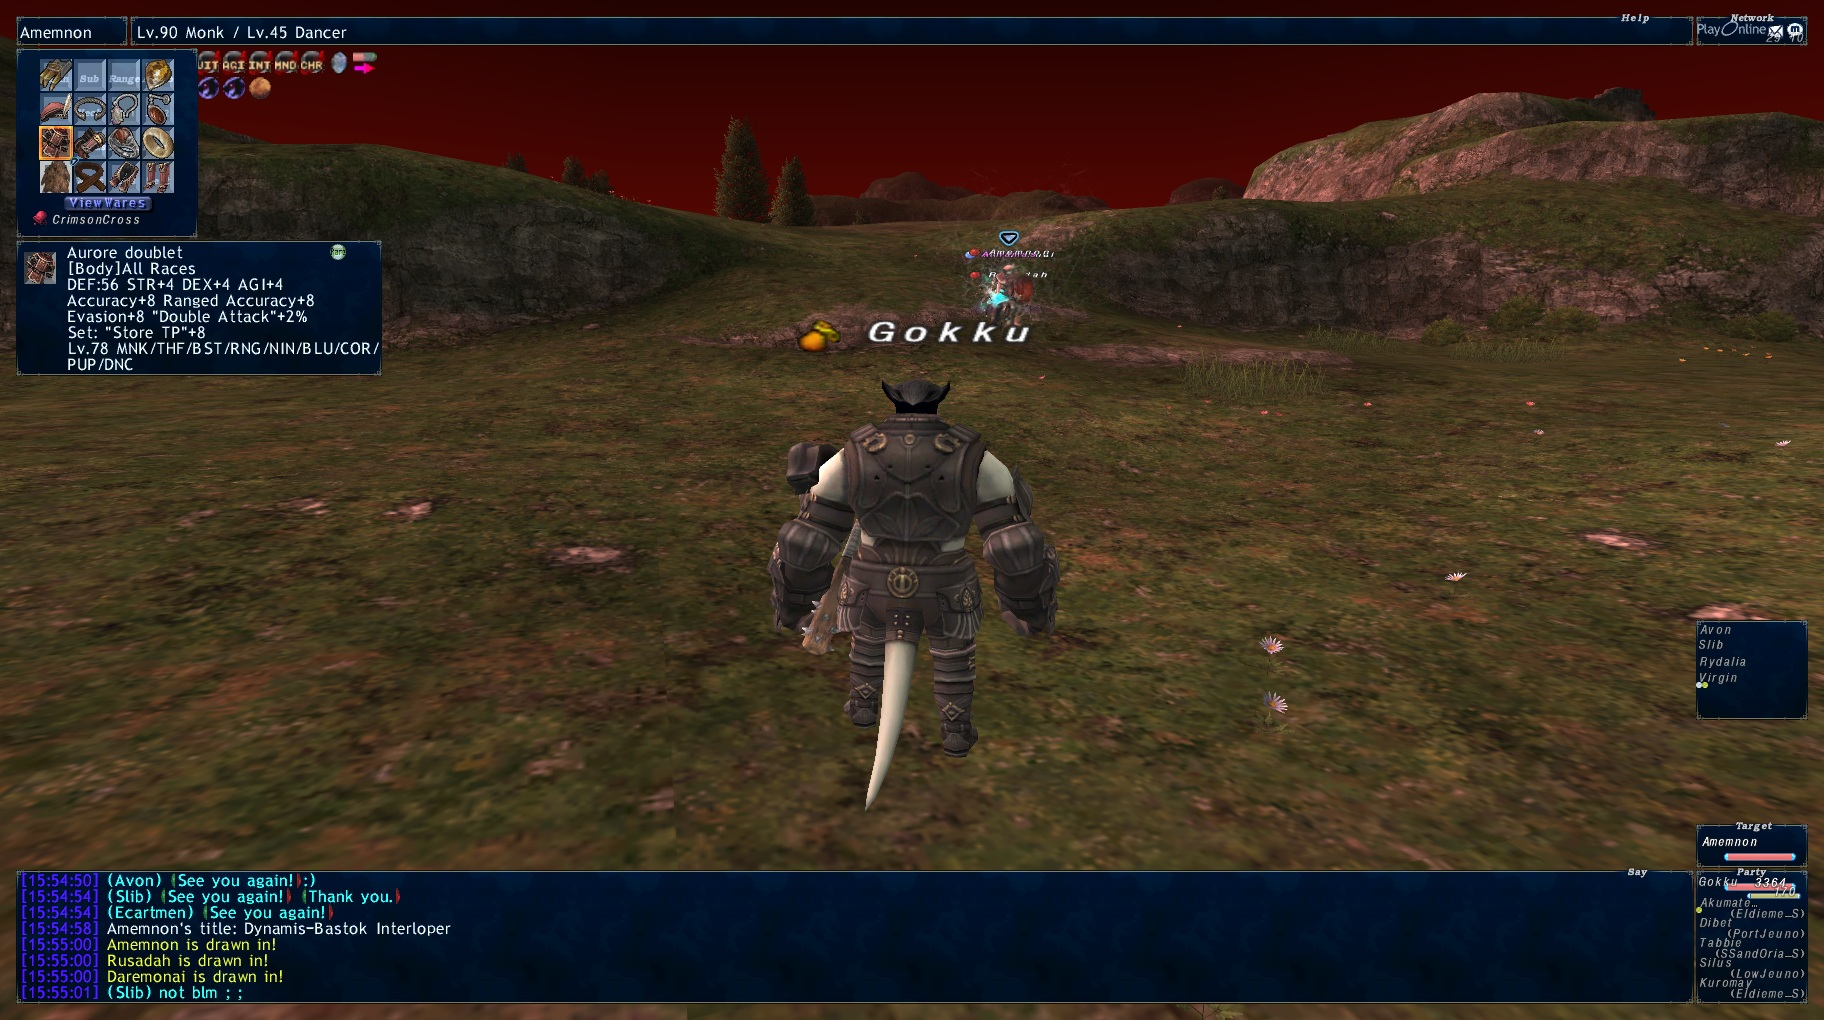 gokku ffxi gear lv78 wear stand cares leech dolls xxii thread literally player make pics renzys gimpleeches long taking shots screen point fast killing presuming lv90s contribute mobs gonna vtit listed mooch damage contribution tier this play gimpconfusedwtf contributions